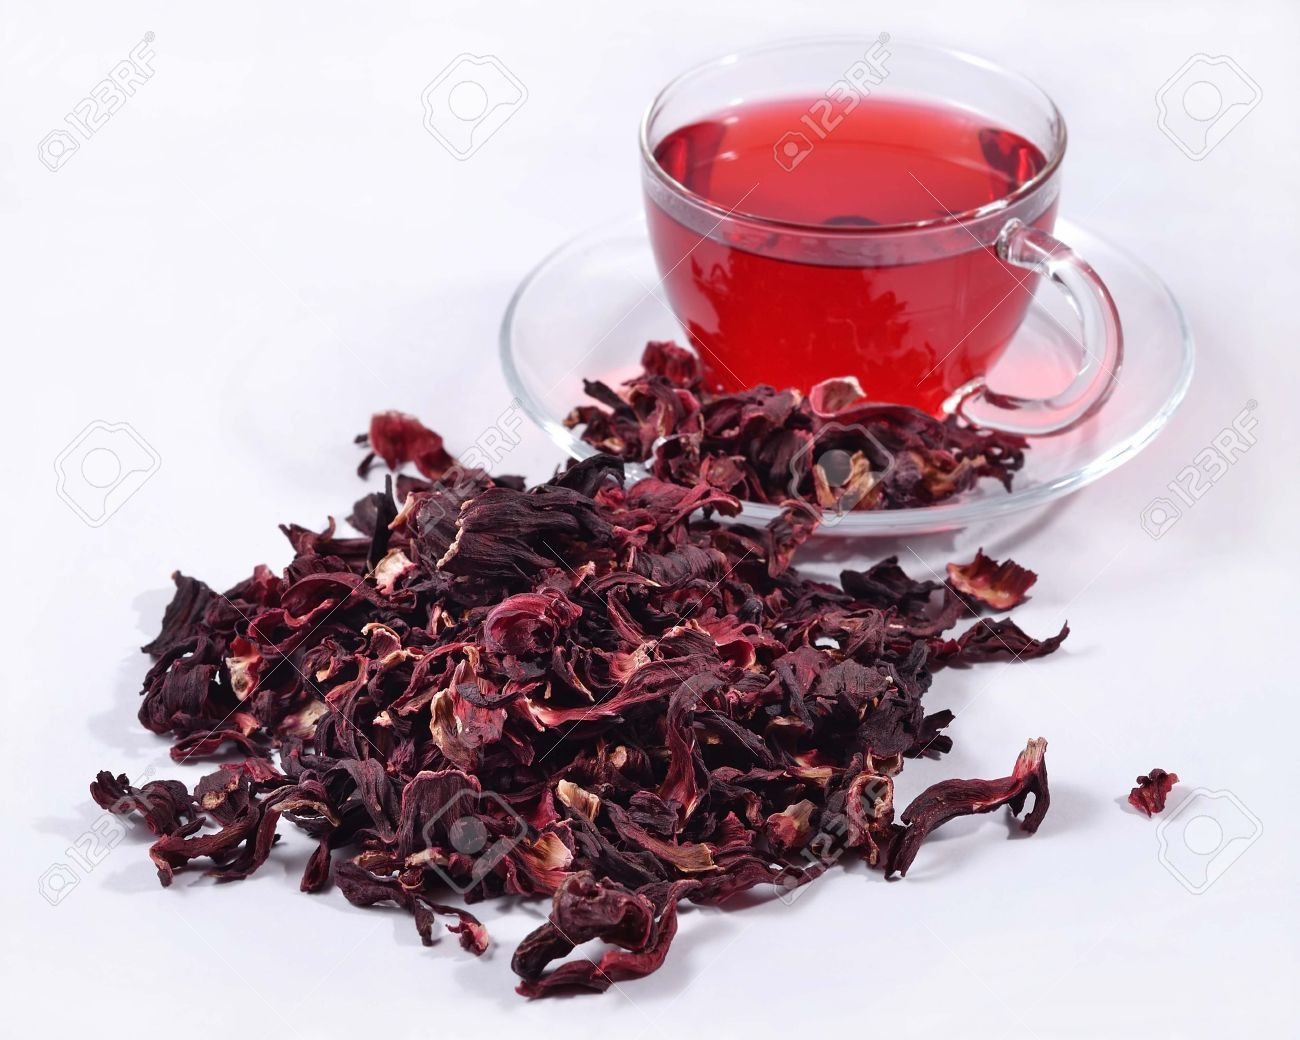 Hibiscus tea has been gaining a lot of popularity over the past few hibiscus tea has been gaining a lot of popularity over the past few years those izmirmasajfo Choice Image